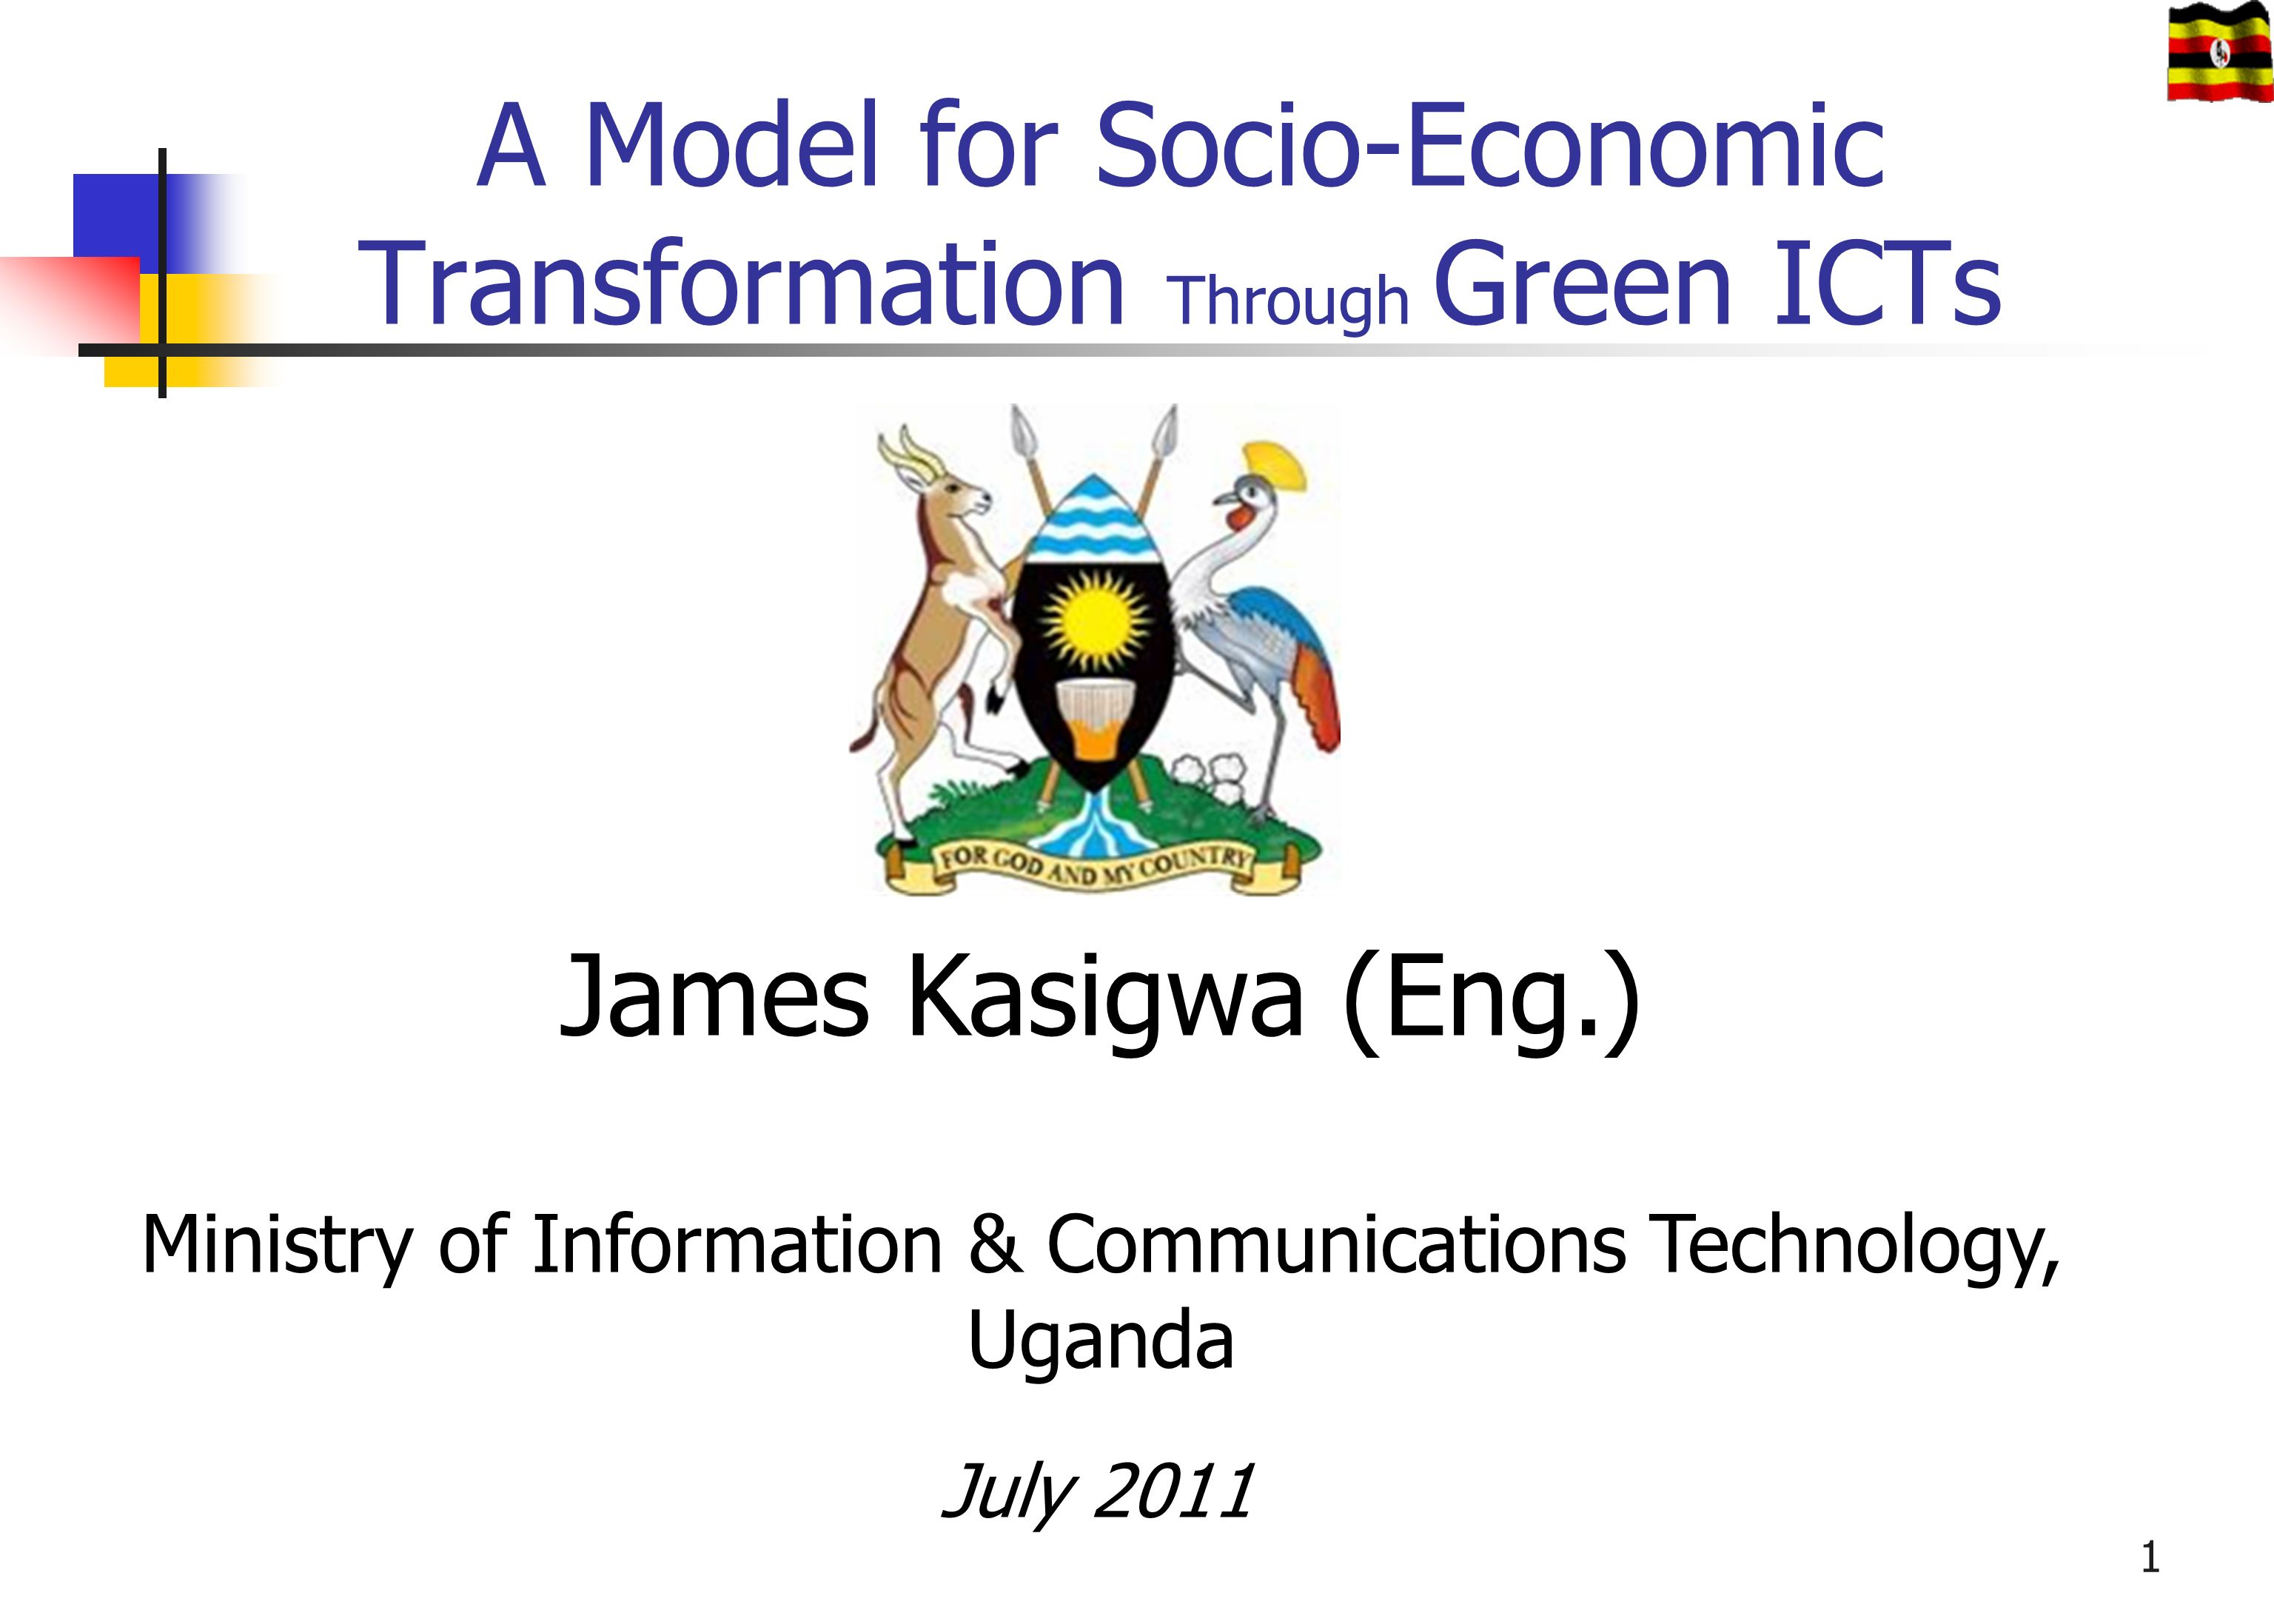 A Model for Socio-Economic Transformation Through Green ICTs